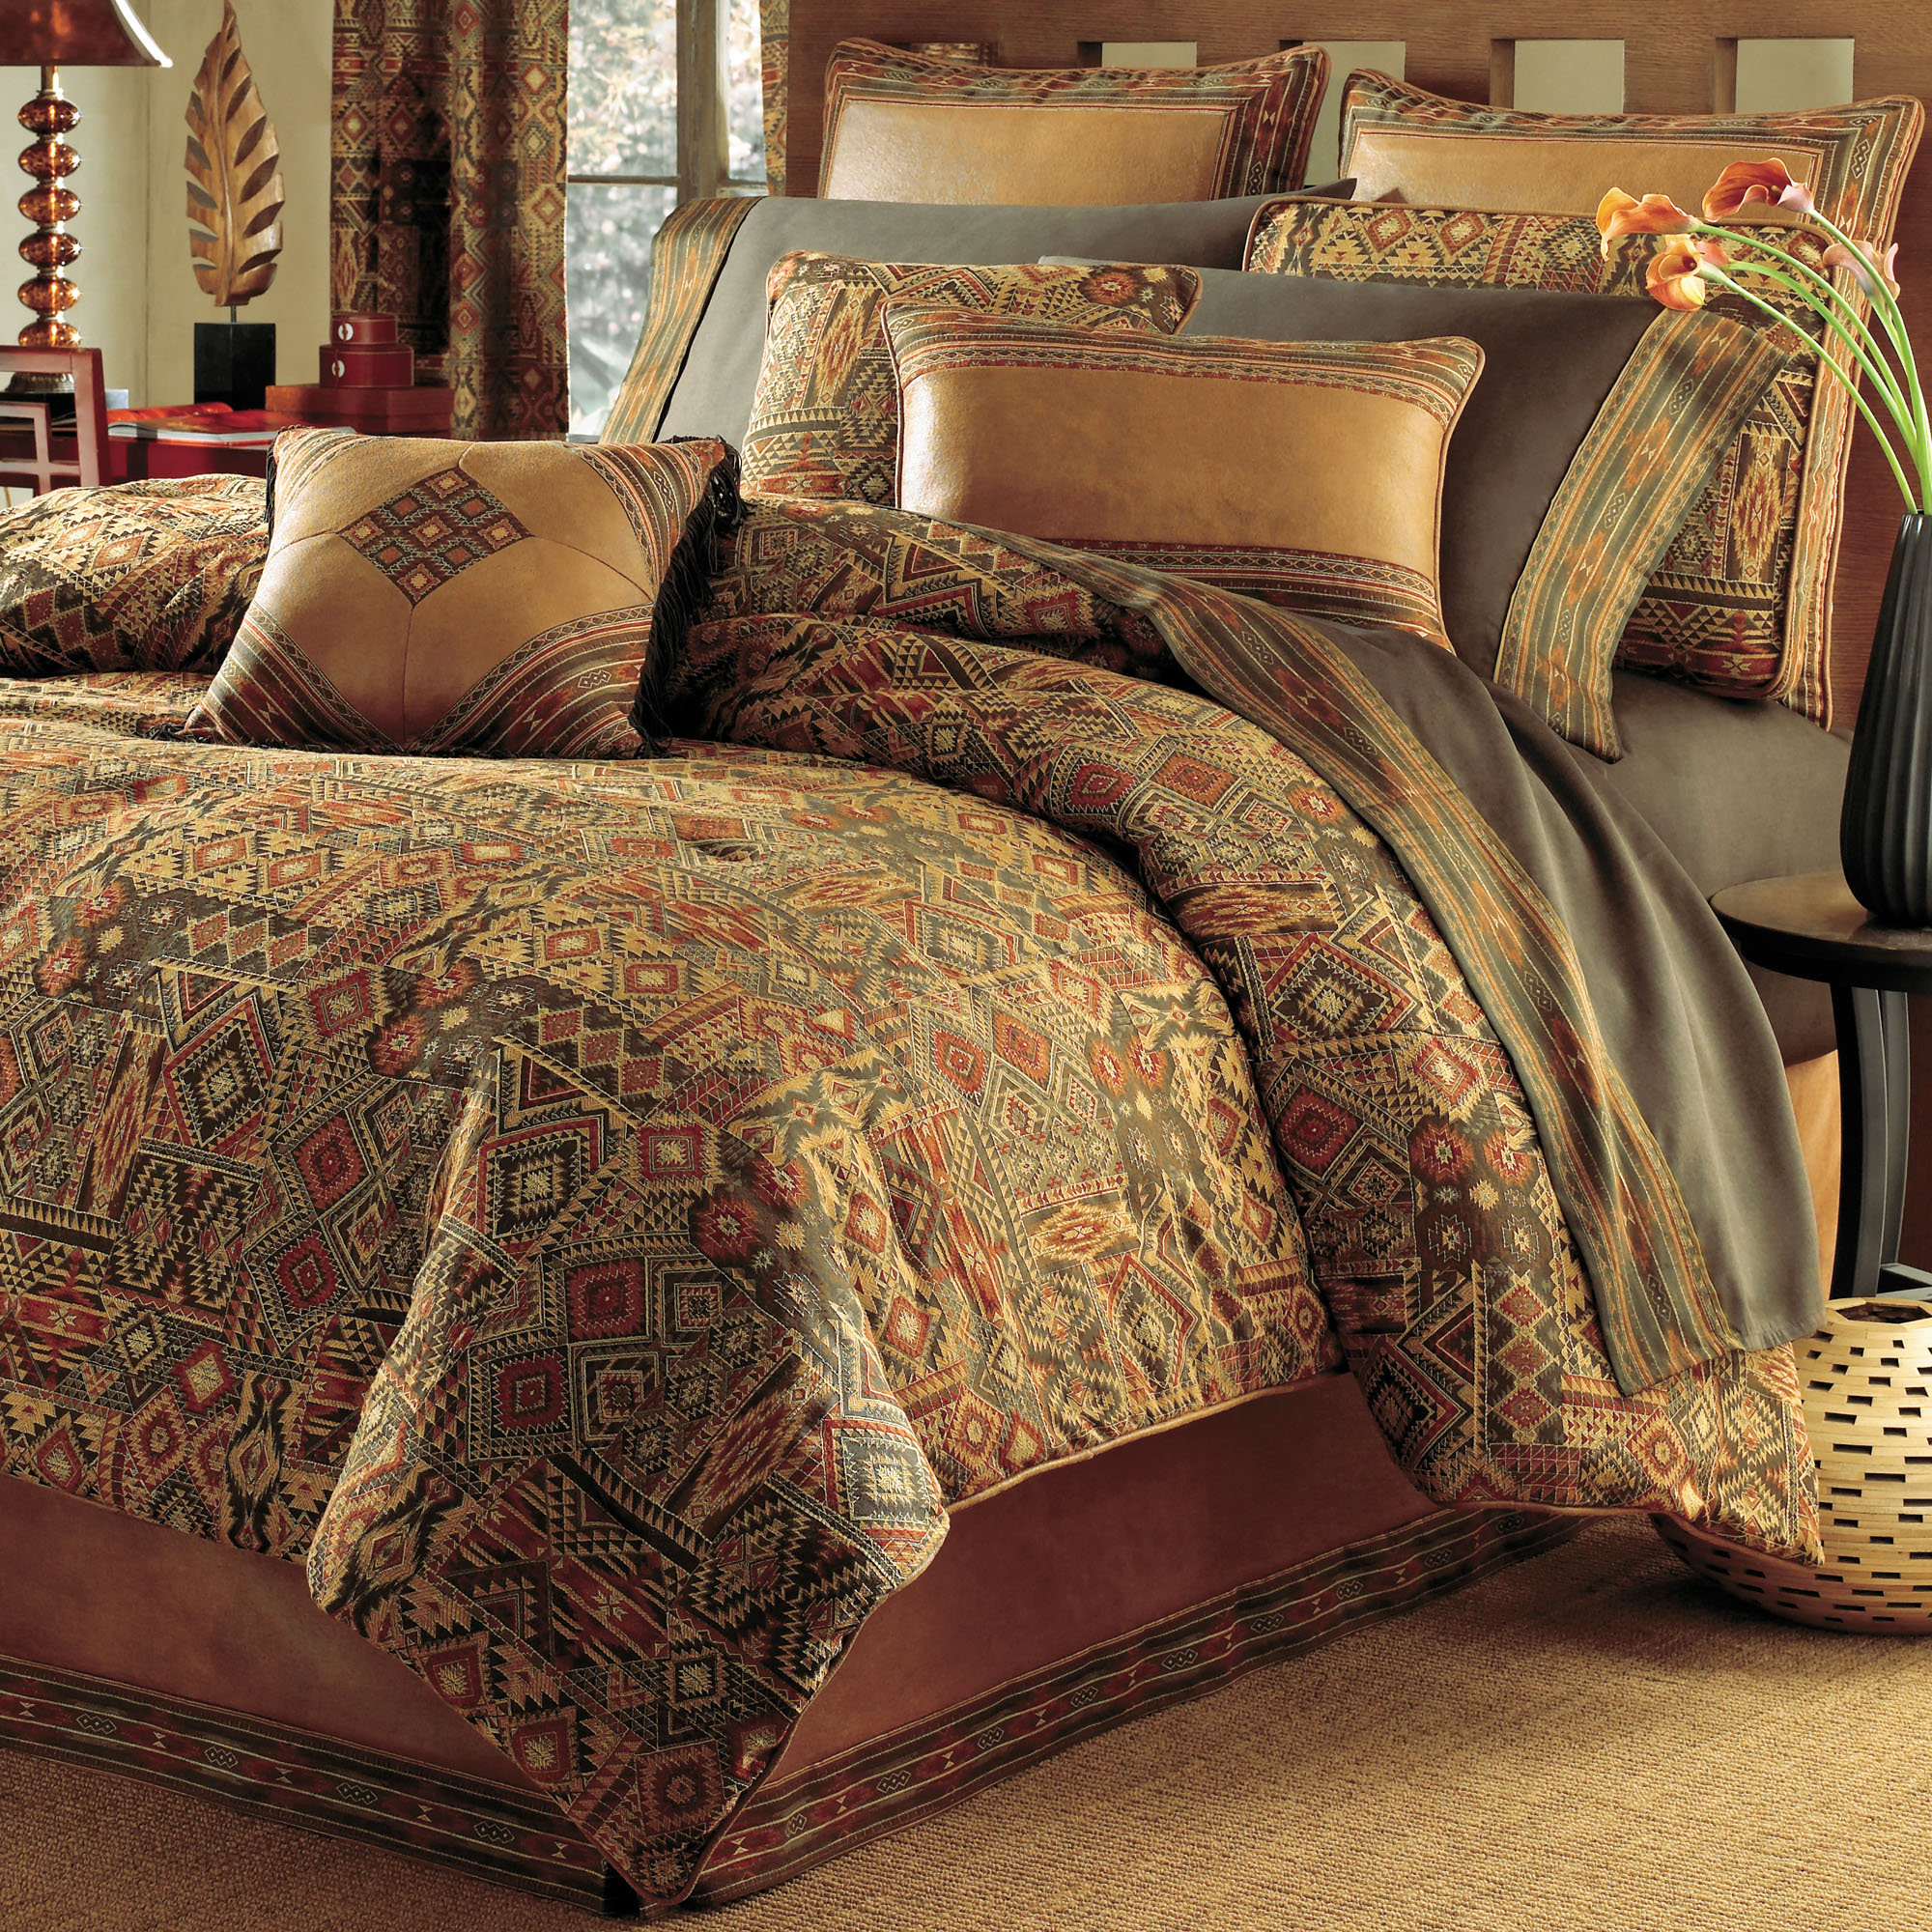 luxury laura ashley bedding with pillows for bedding ideas